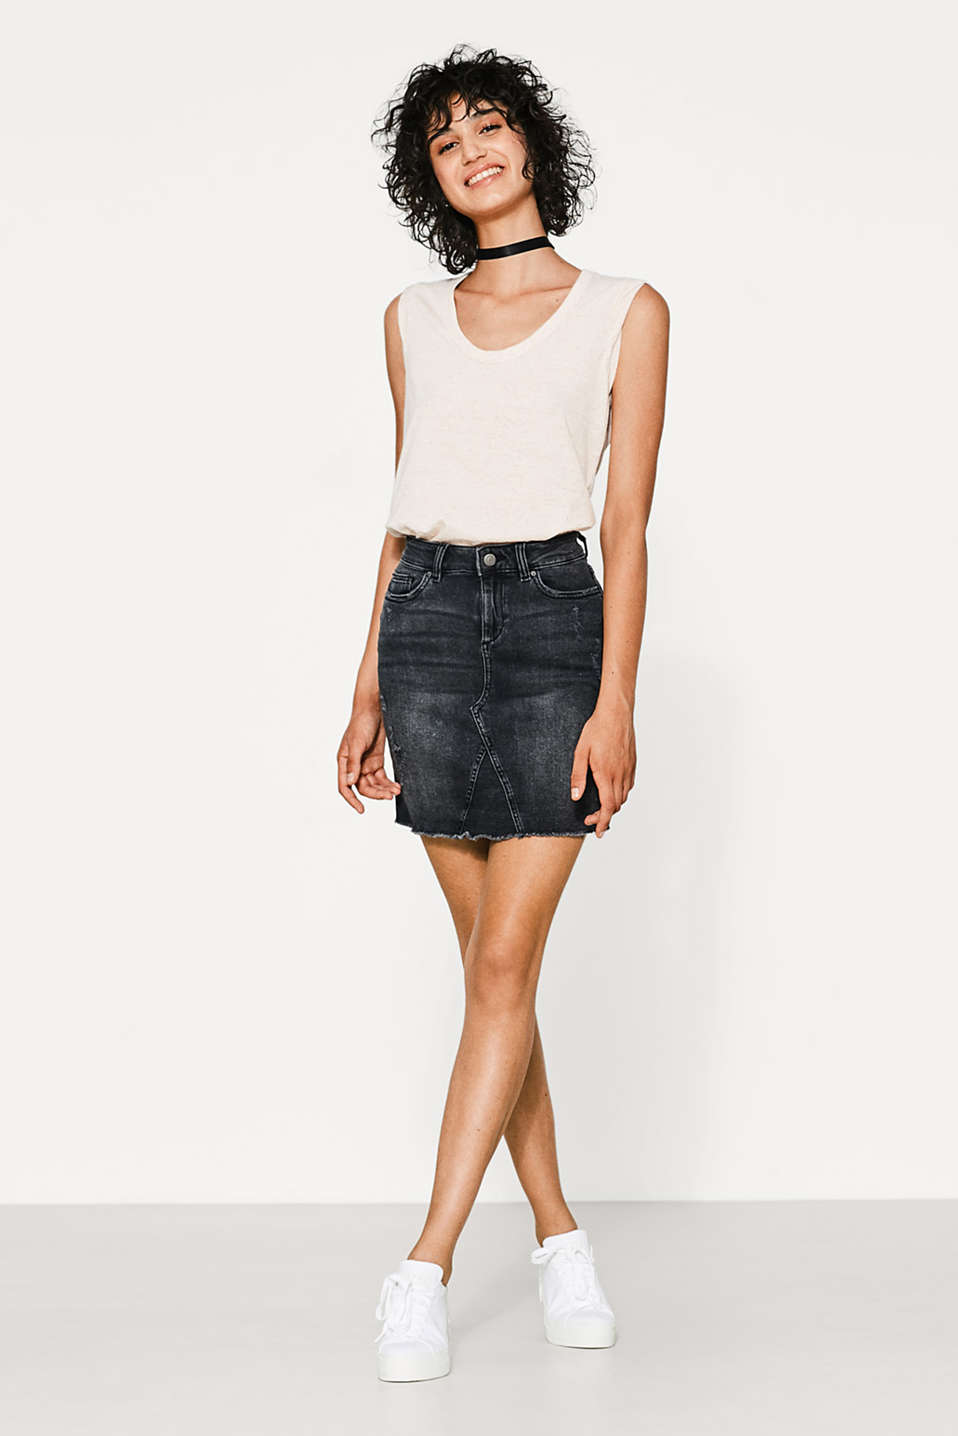 Sleeveless T-shirt with dimple texture